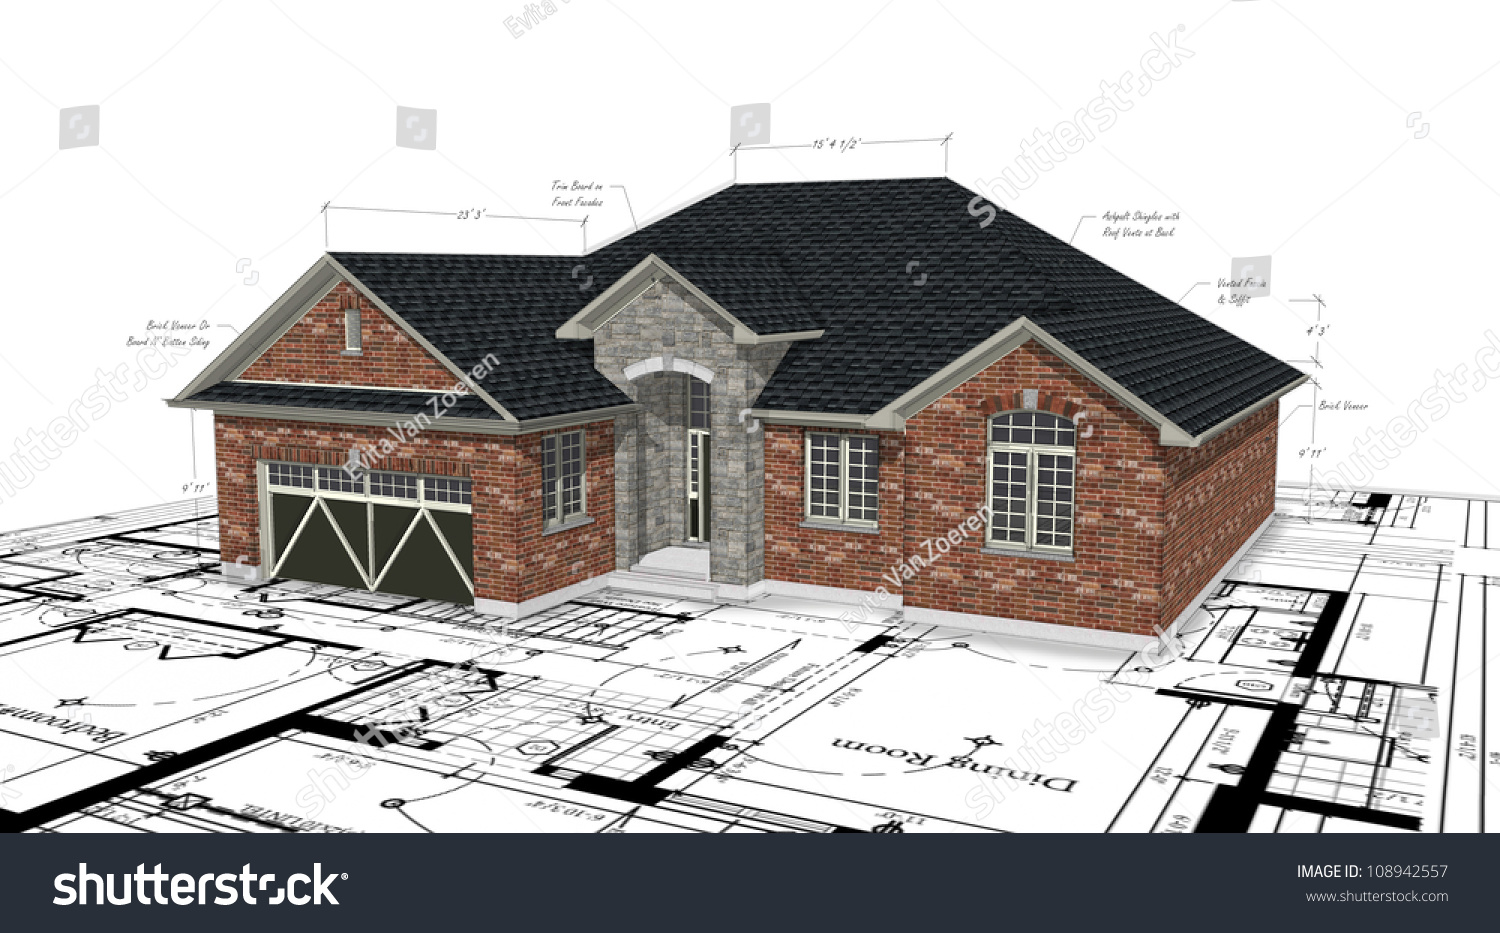 Brick house plans with pictures - Brick house plans ...